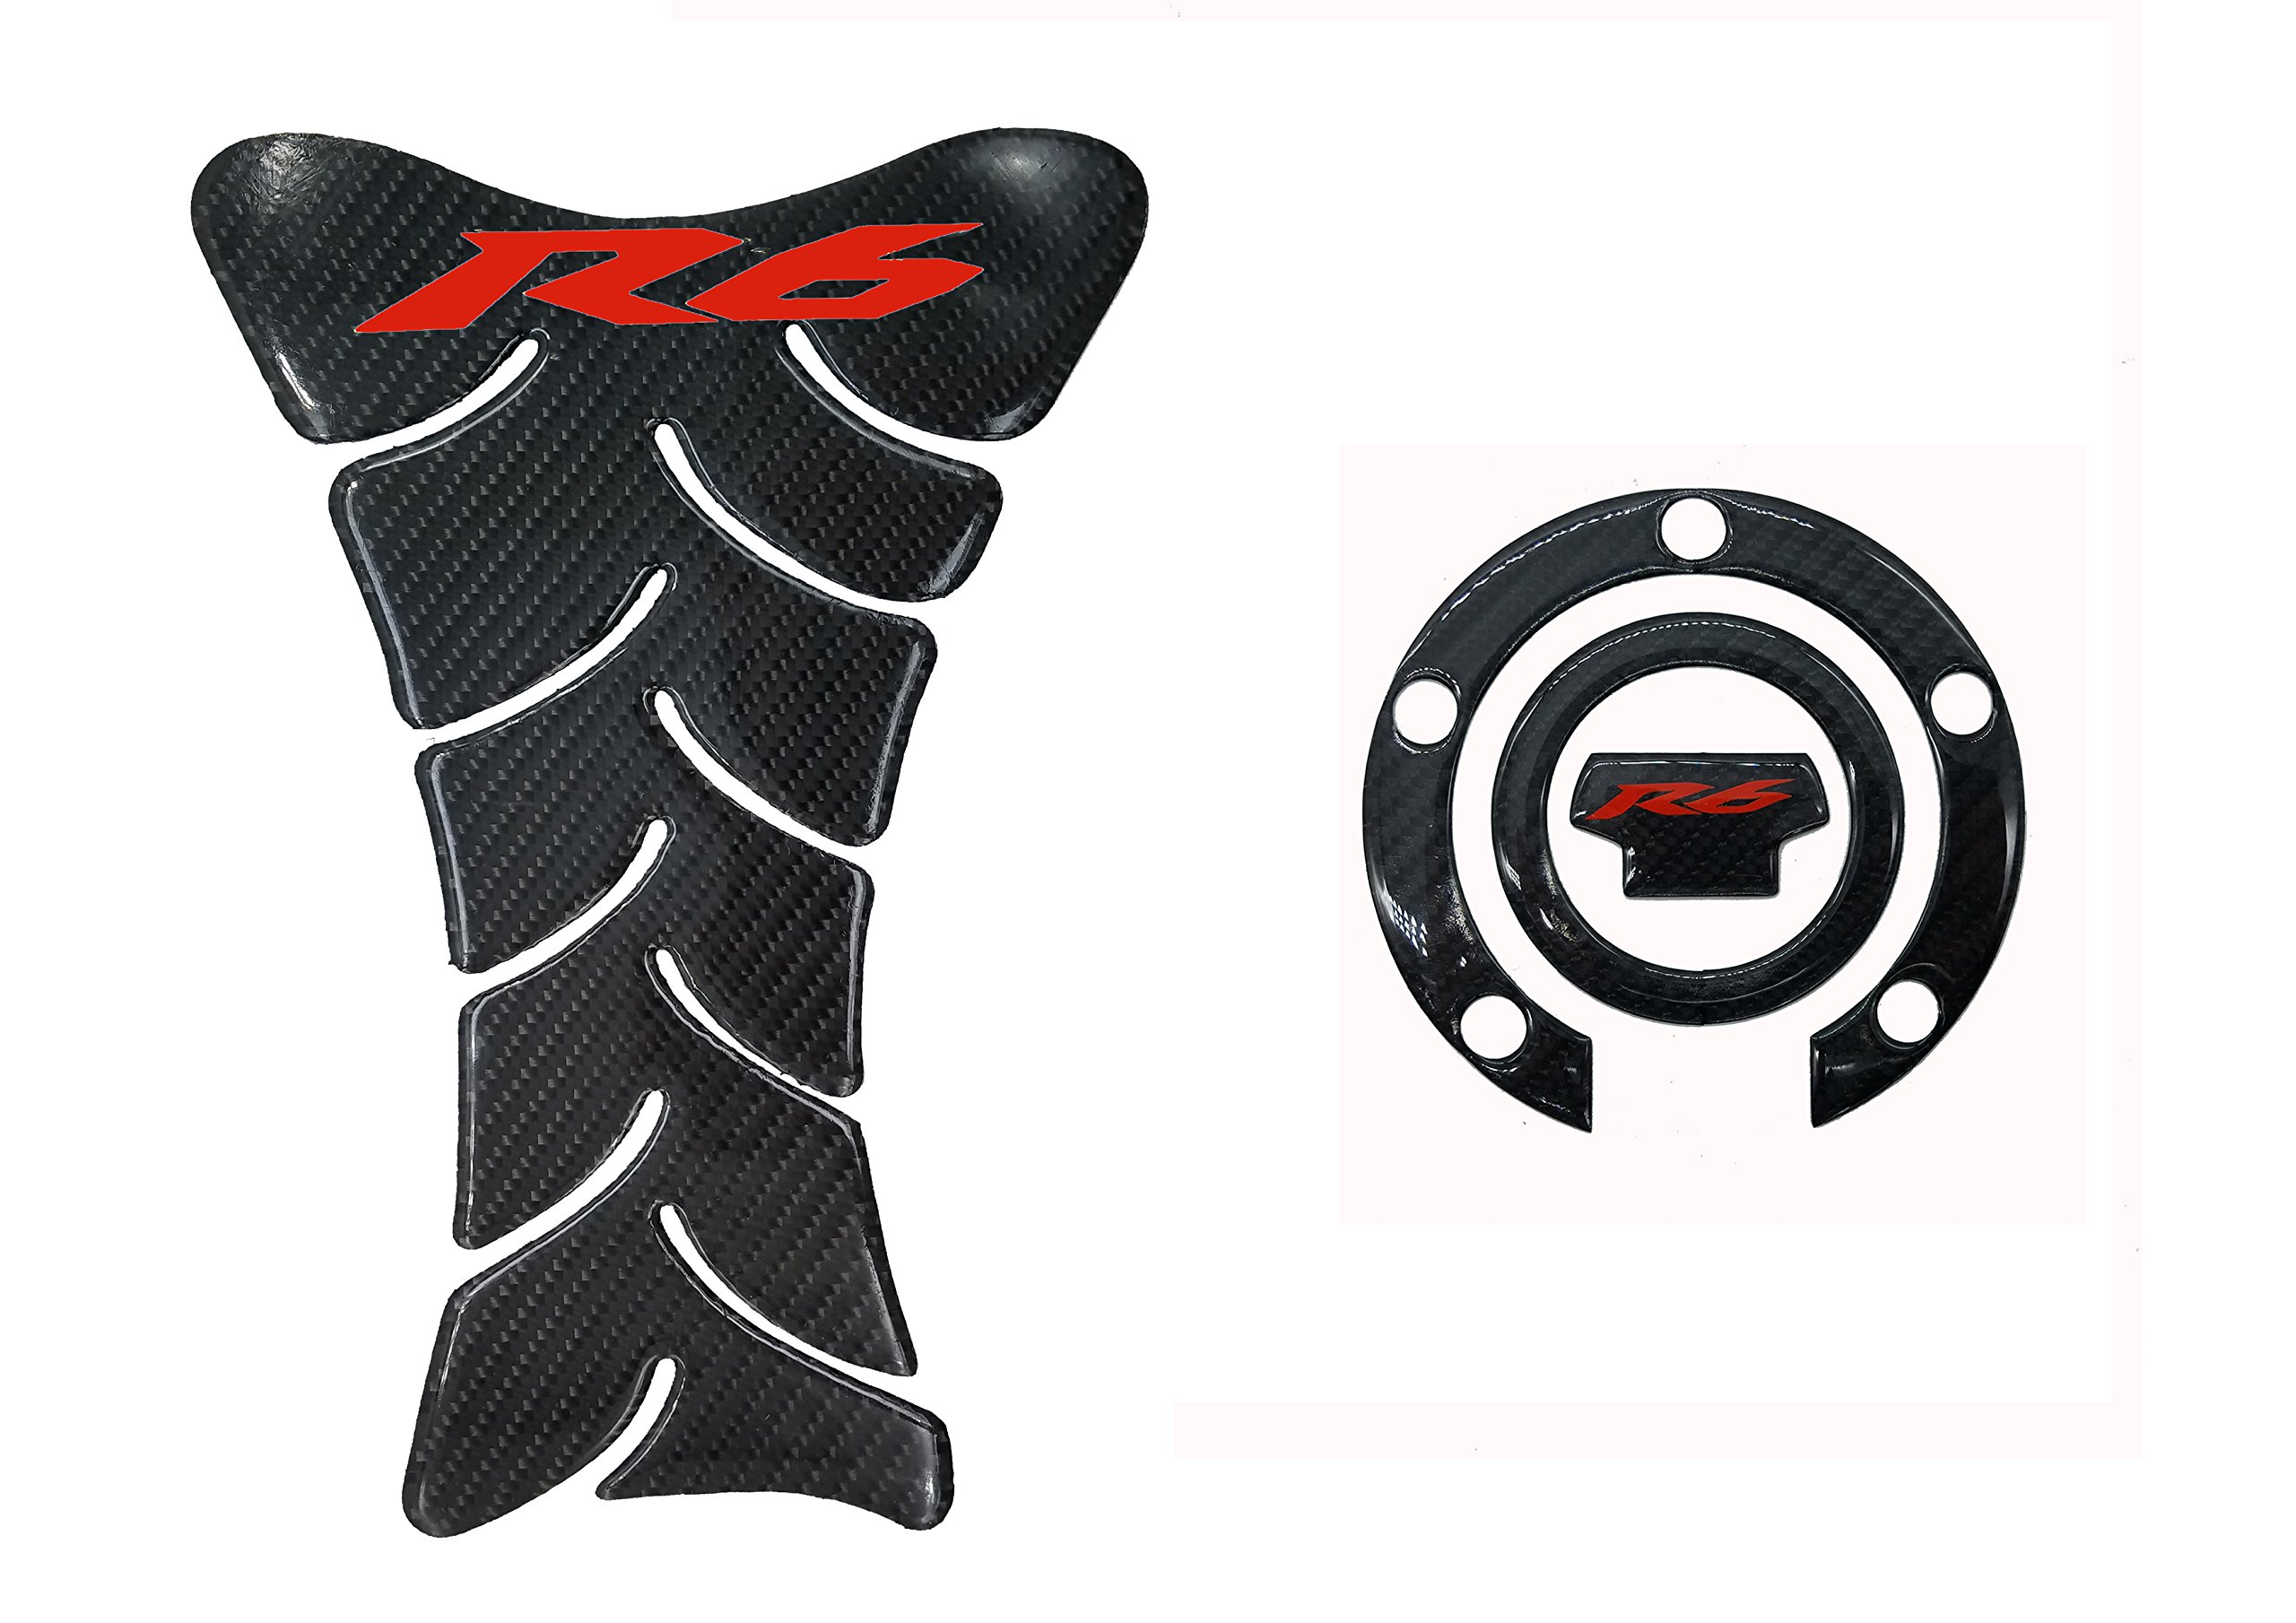 Real Carbon Fiber 3D Sticker Vinyl Decal Emblem Protection Gas Tank Pad & Cap Cover For YAMAHA YZF R6/R600 2001-2015